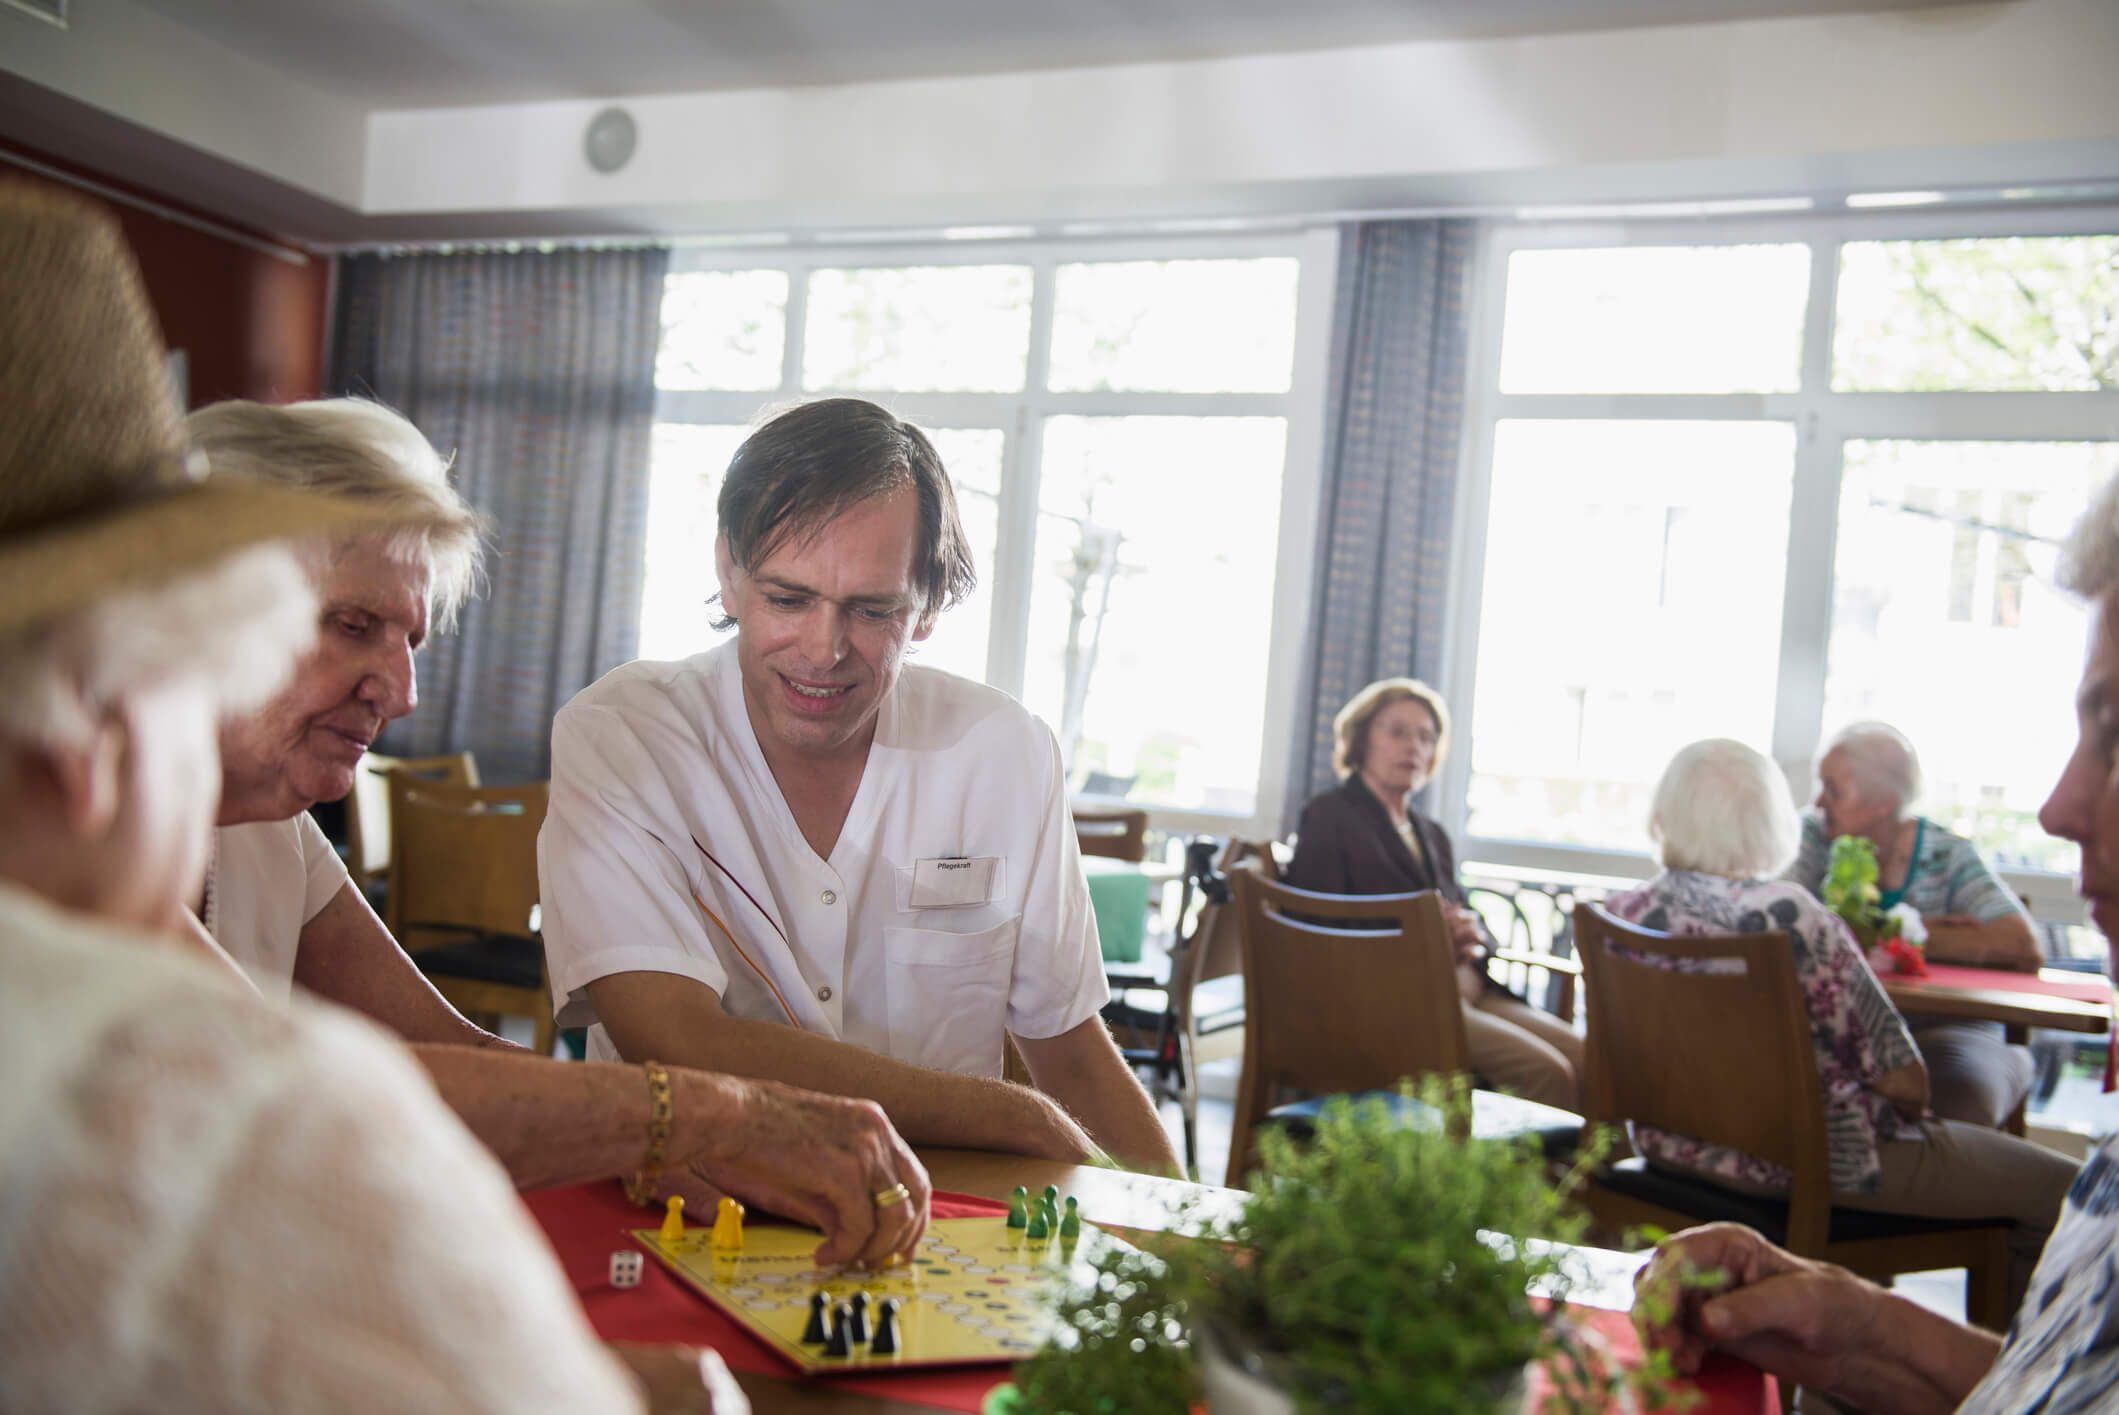 Average Cost of a Nursing Home